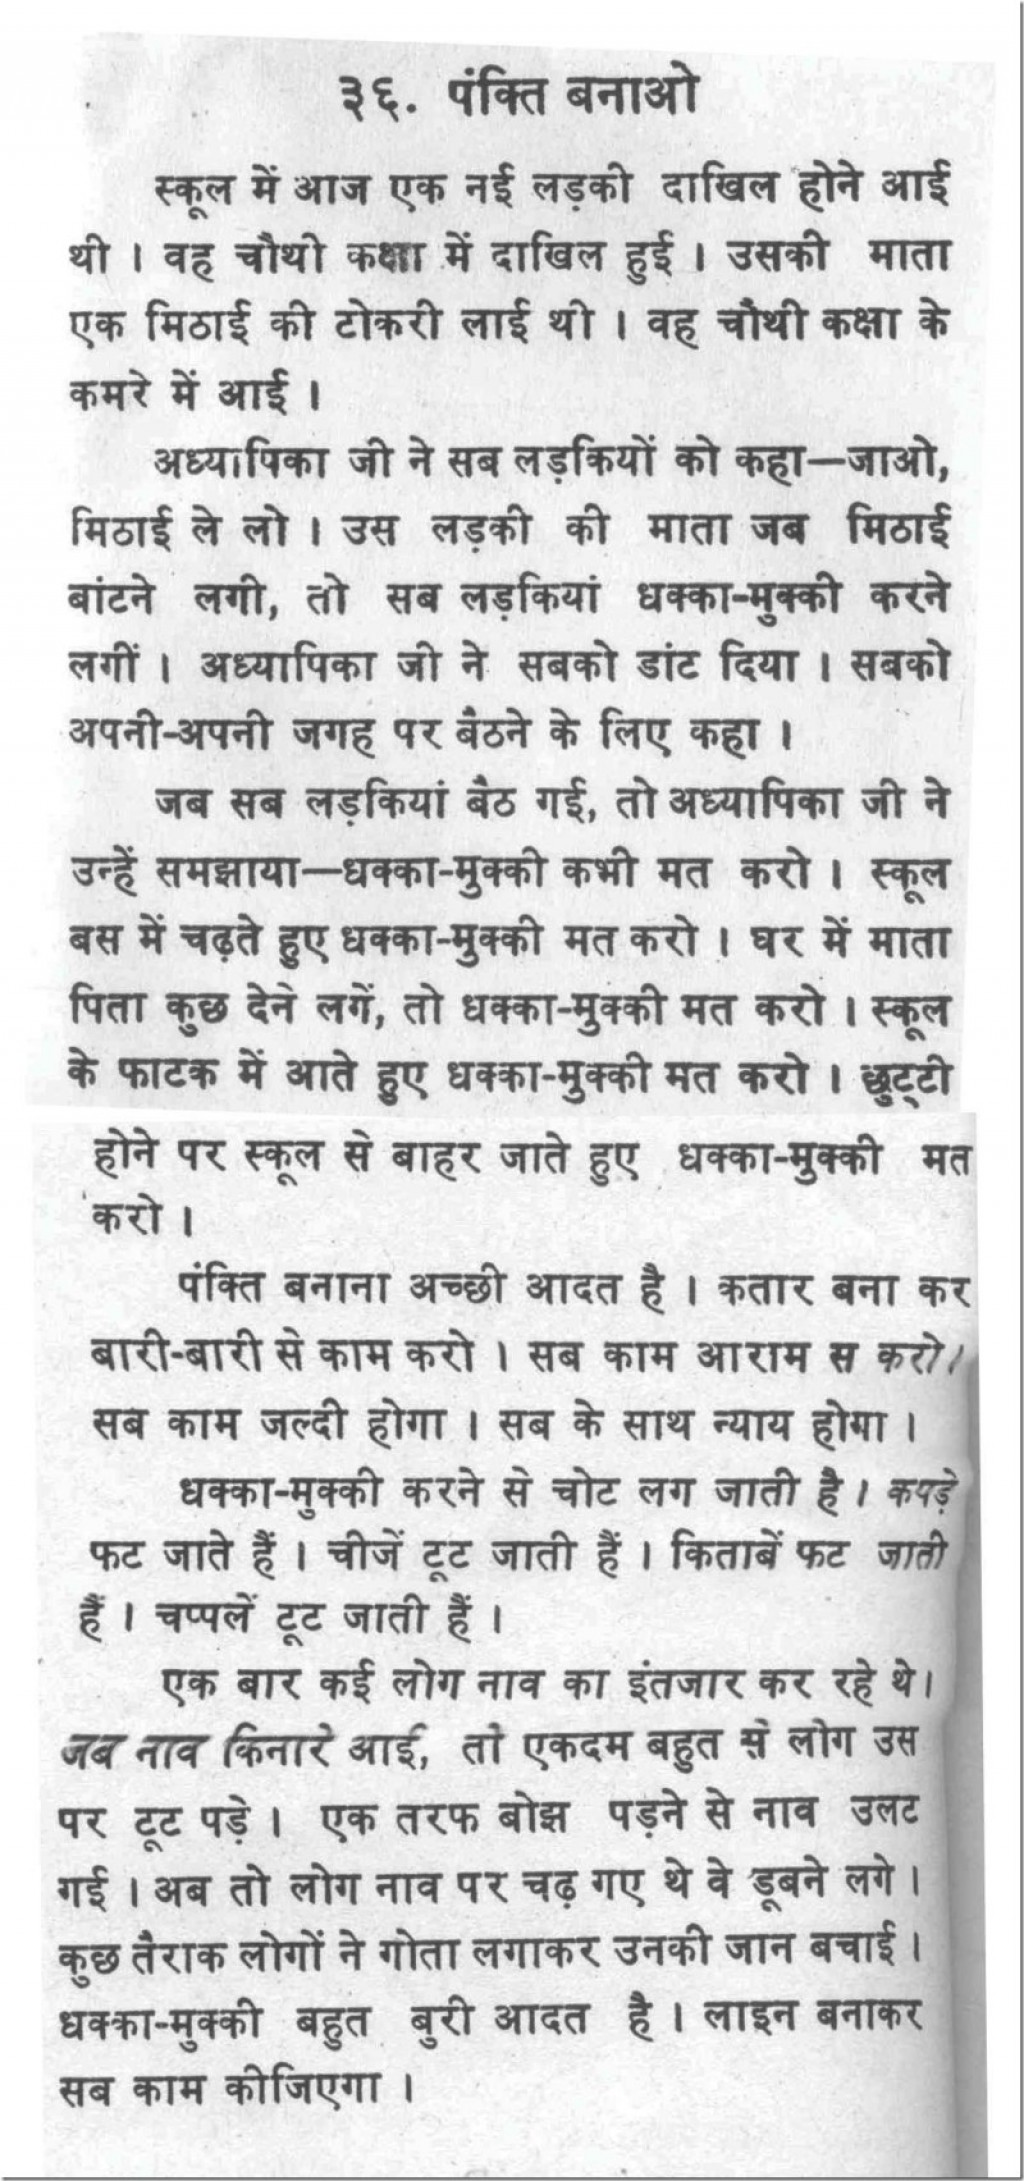 003 10030 Thumbresize8002c1704 Good Habits Essay In Hindi Exceptional Reading Habit Wikipedia Large